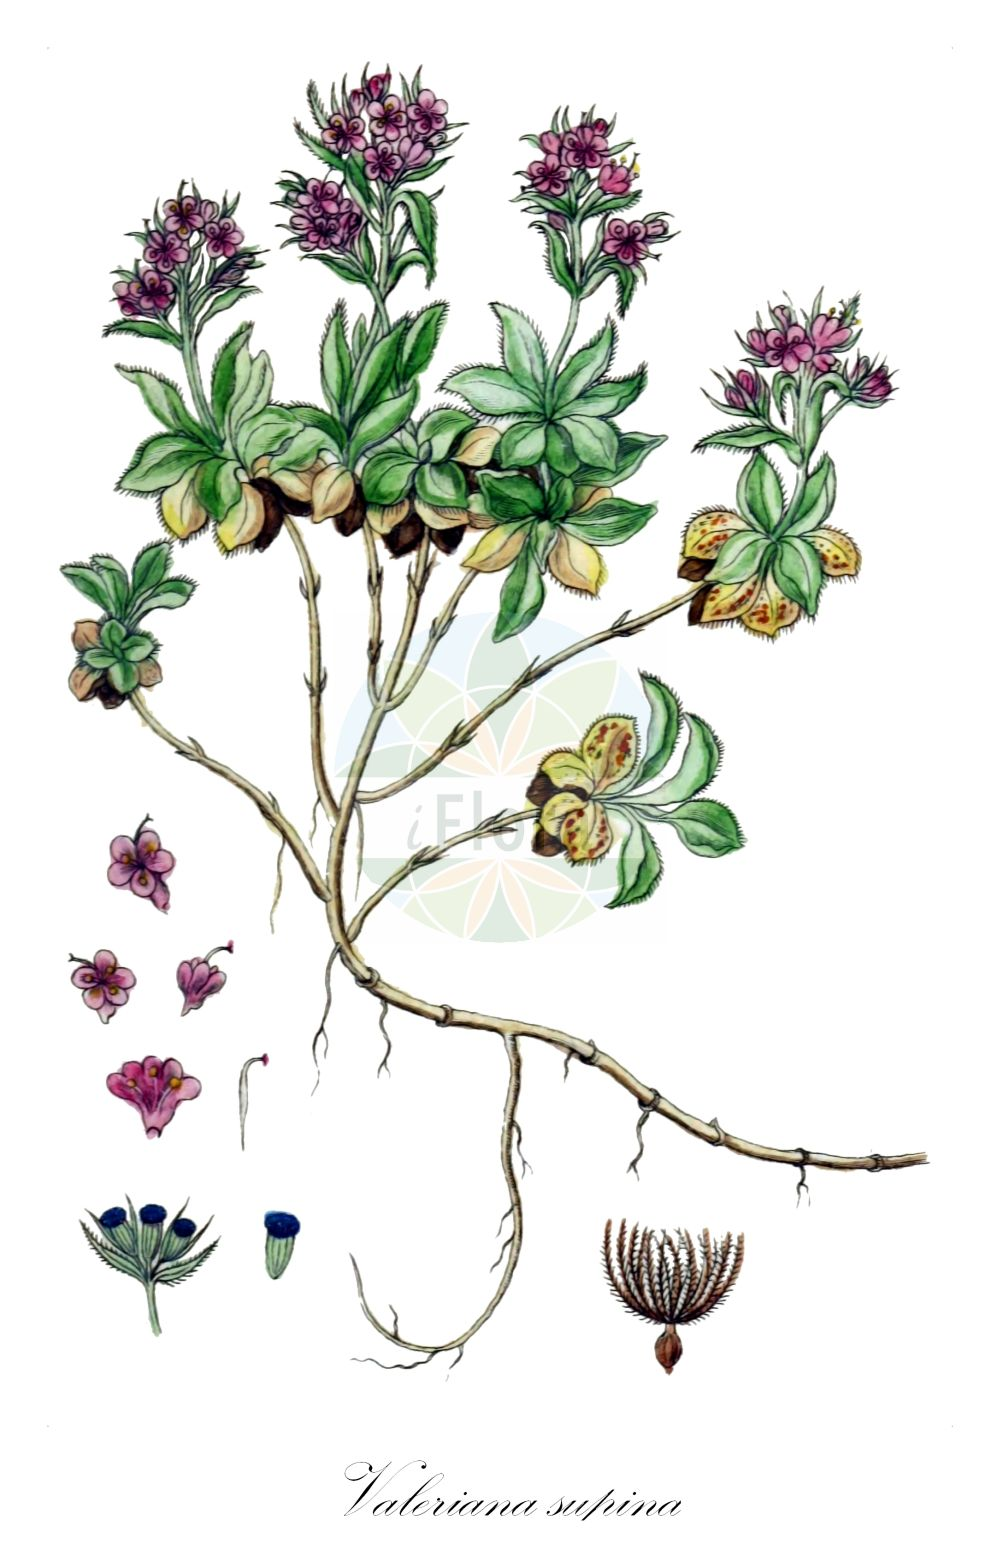 Historische Abbildung von Valeriana supina (Zwerg-Baldrian - Dwarf Valerian). Das Bild zeigt Blatt, Bluete, Frucht und Same. ---- Historical Drawing of Valeriana supina (Zwerg-Baldrian - Dwarf Valerian).The image is showing leaf, flower, fruit and seed.(Valeriana supina,Zwerg-Baldrian,Dwarf Valerian,Valeriana,Baldrian,Valerian,Caprifoliaceae,Geissblattgewaechse,Honeysuckle family,Blatt,Bluete,Frucht,Same,leaf,flower,fruit,seed,Sturm (1796f))